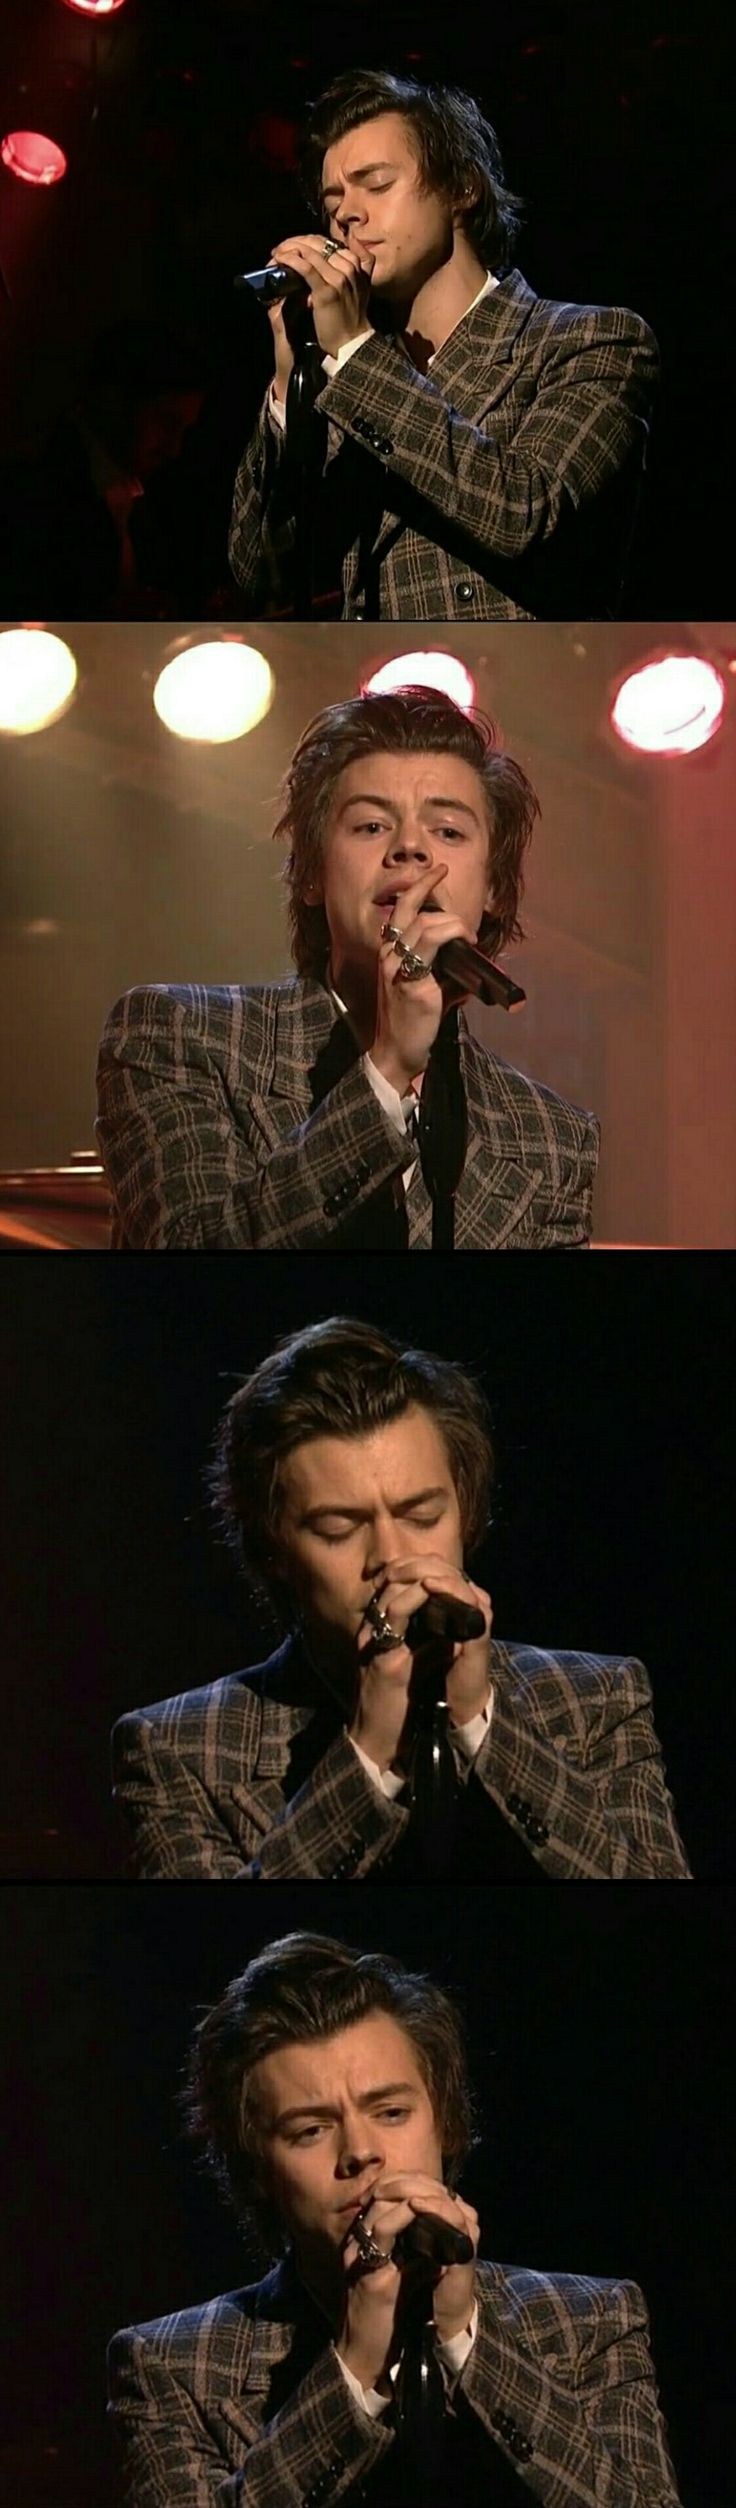 Harry Styles performing on Saturday Night Live